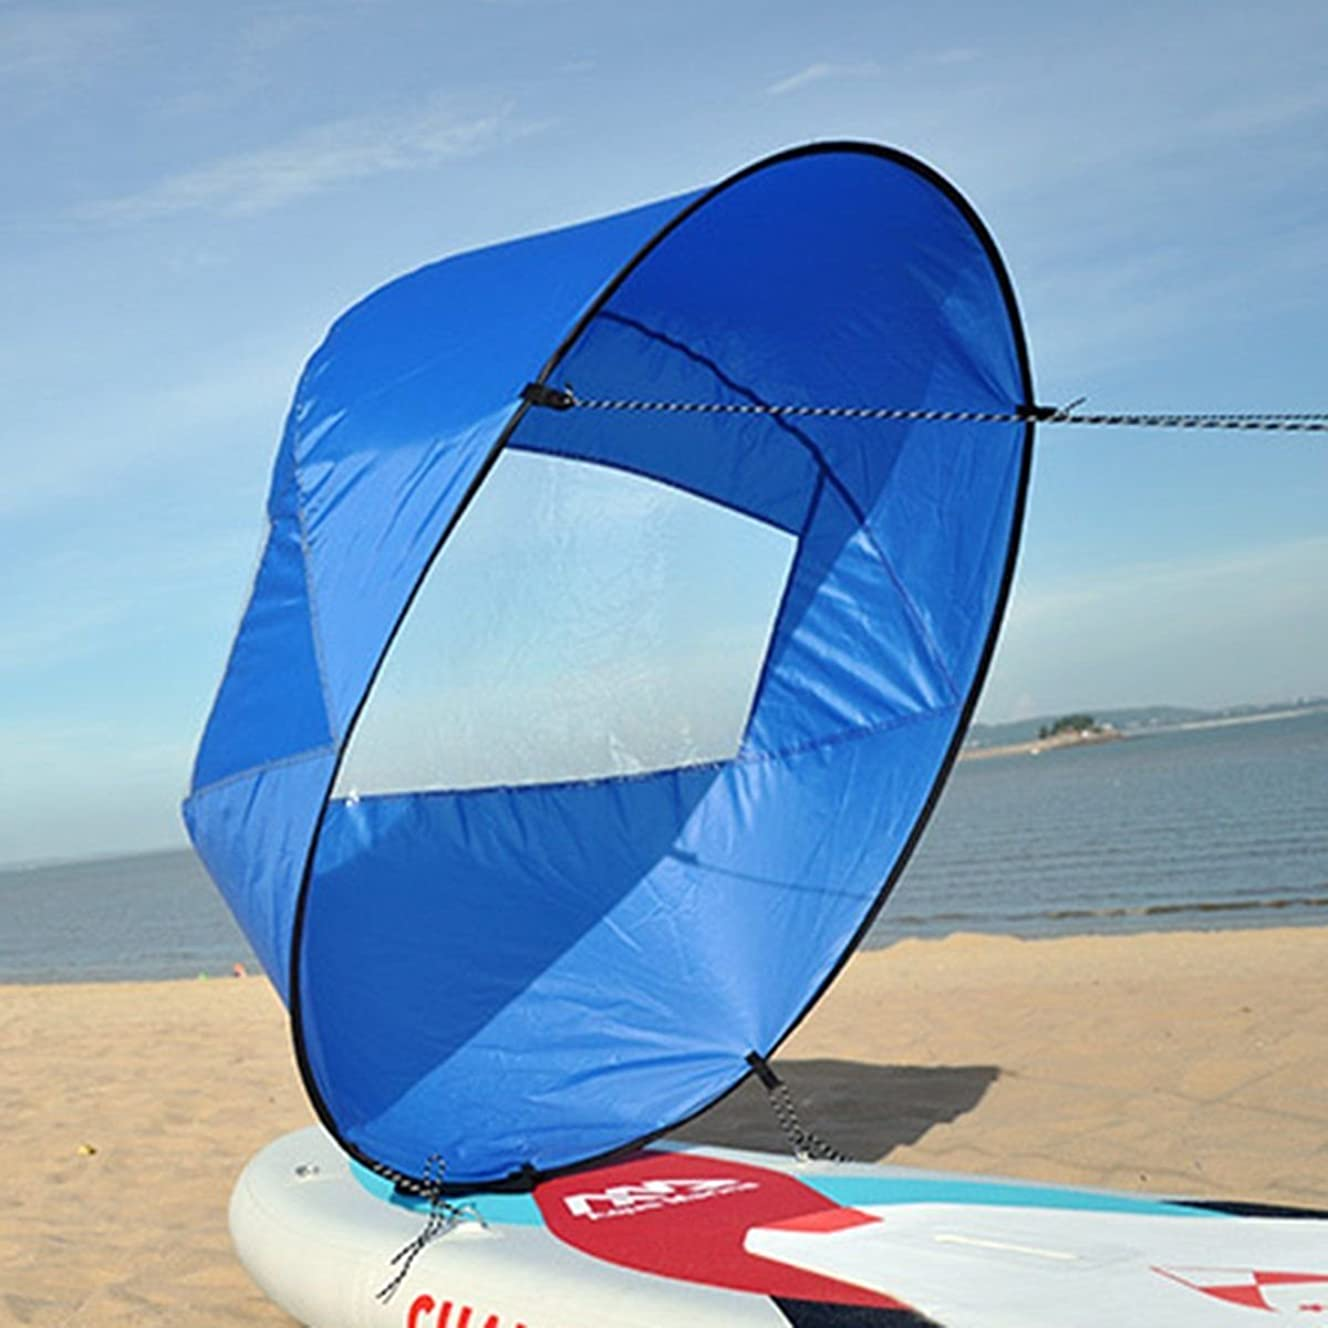 Liruis 42'' Foldable Kayak Downwind Wind Sail Kit Sup Paddle Board Instant Popup Easy Setup for Kayak Boat Sailboat Canoe